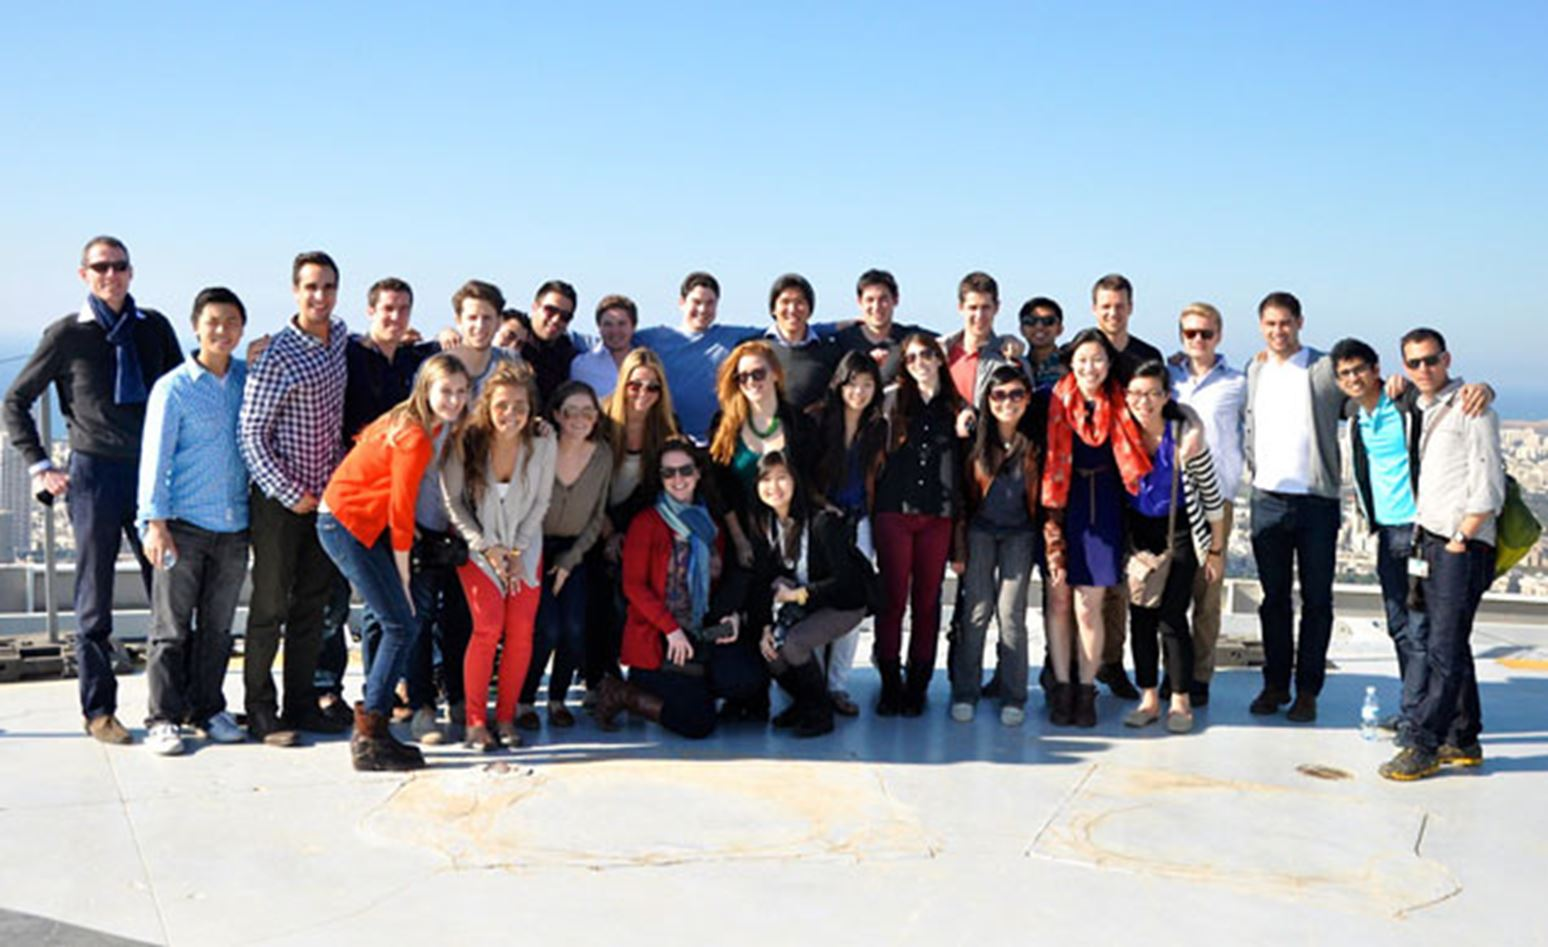 Real-world learning opportunities draw Ivey students to Israel